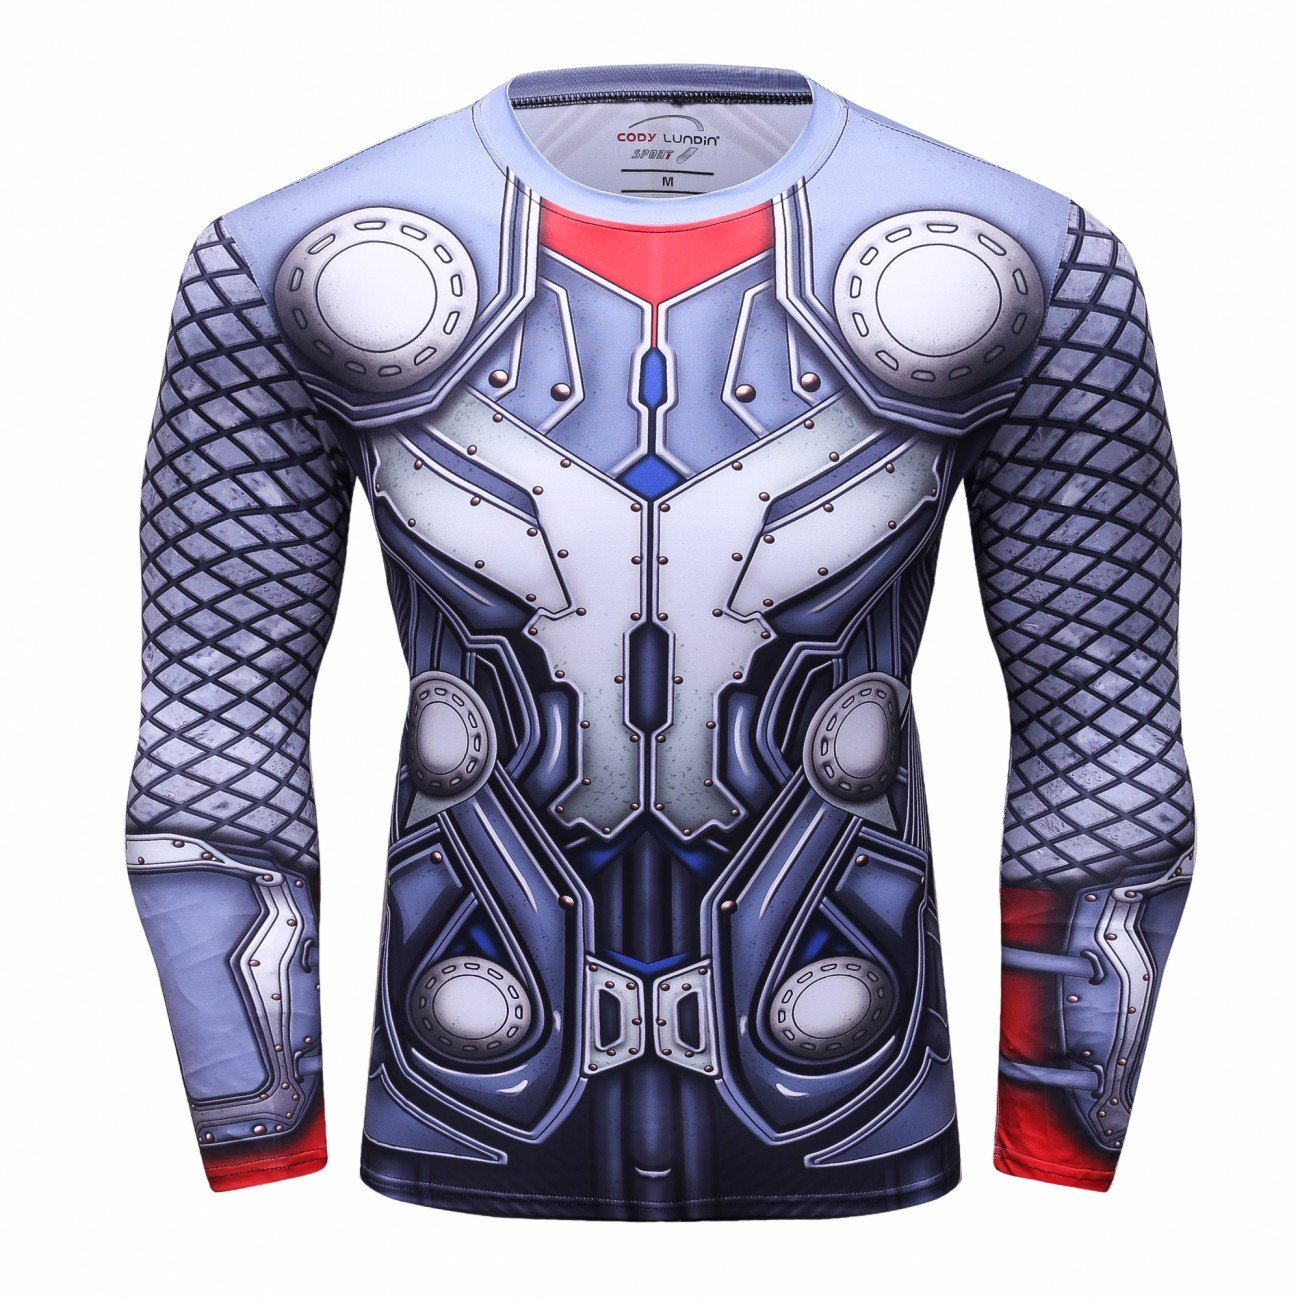 Red Plume Men's Thunder Superhero Sports Shirt Party/Gift Running Functional Long Sleeve Tee